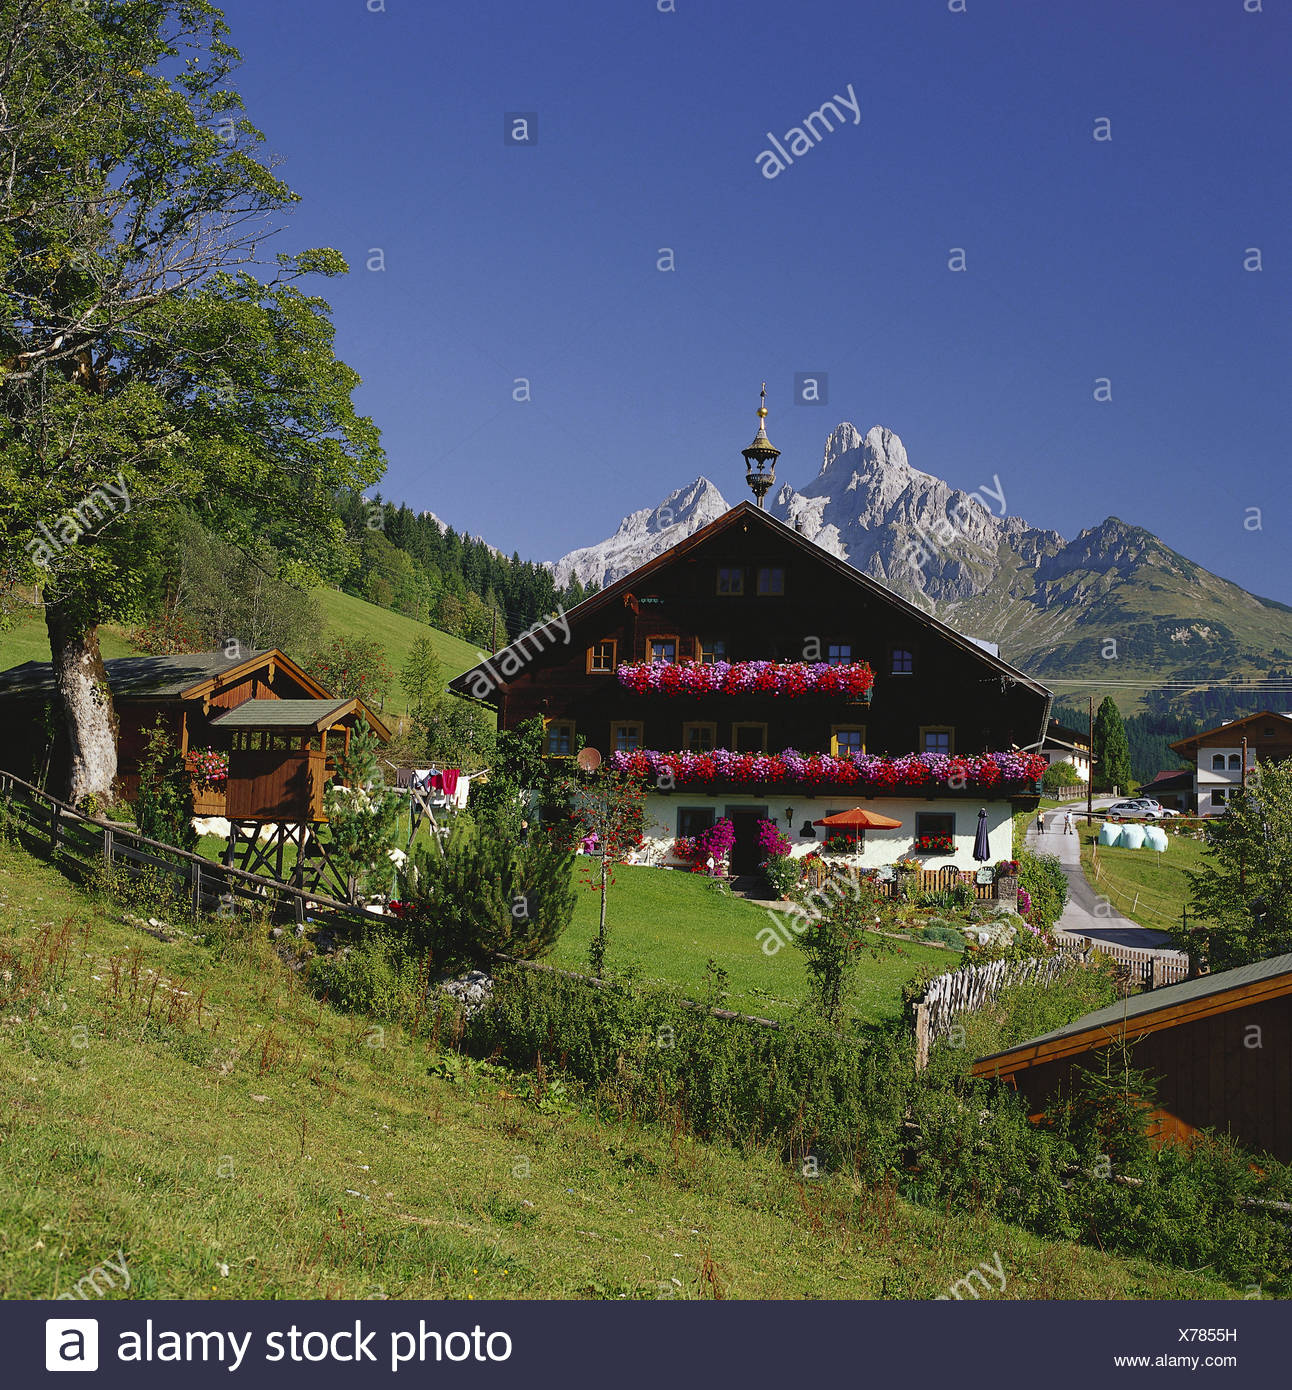 Austria Salzburg Country Felt Moss Farm Background Mountain Mitre Place House Farmhouse Residential Flowers Floral Decoration Summer